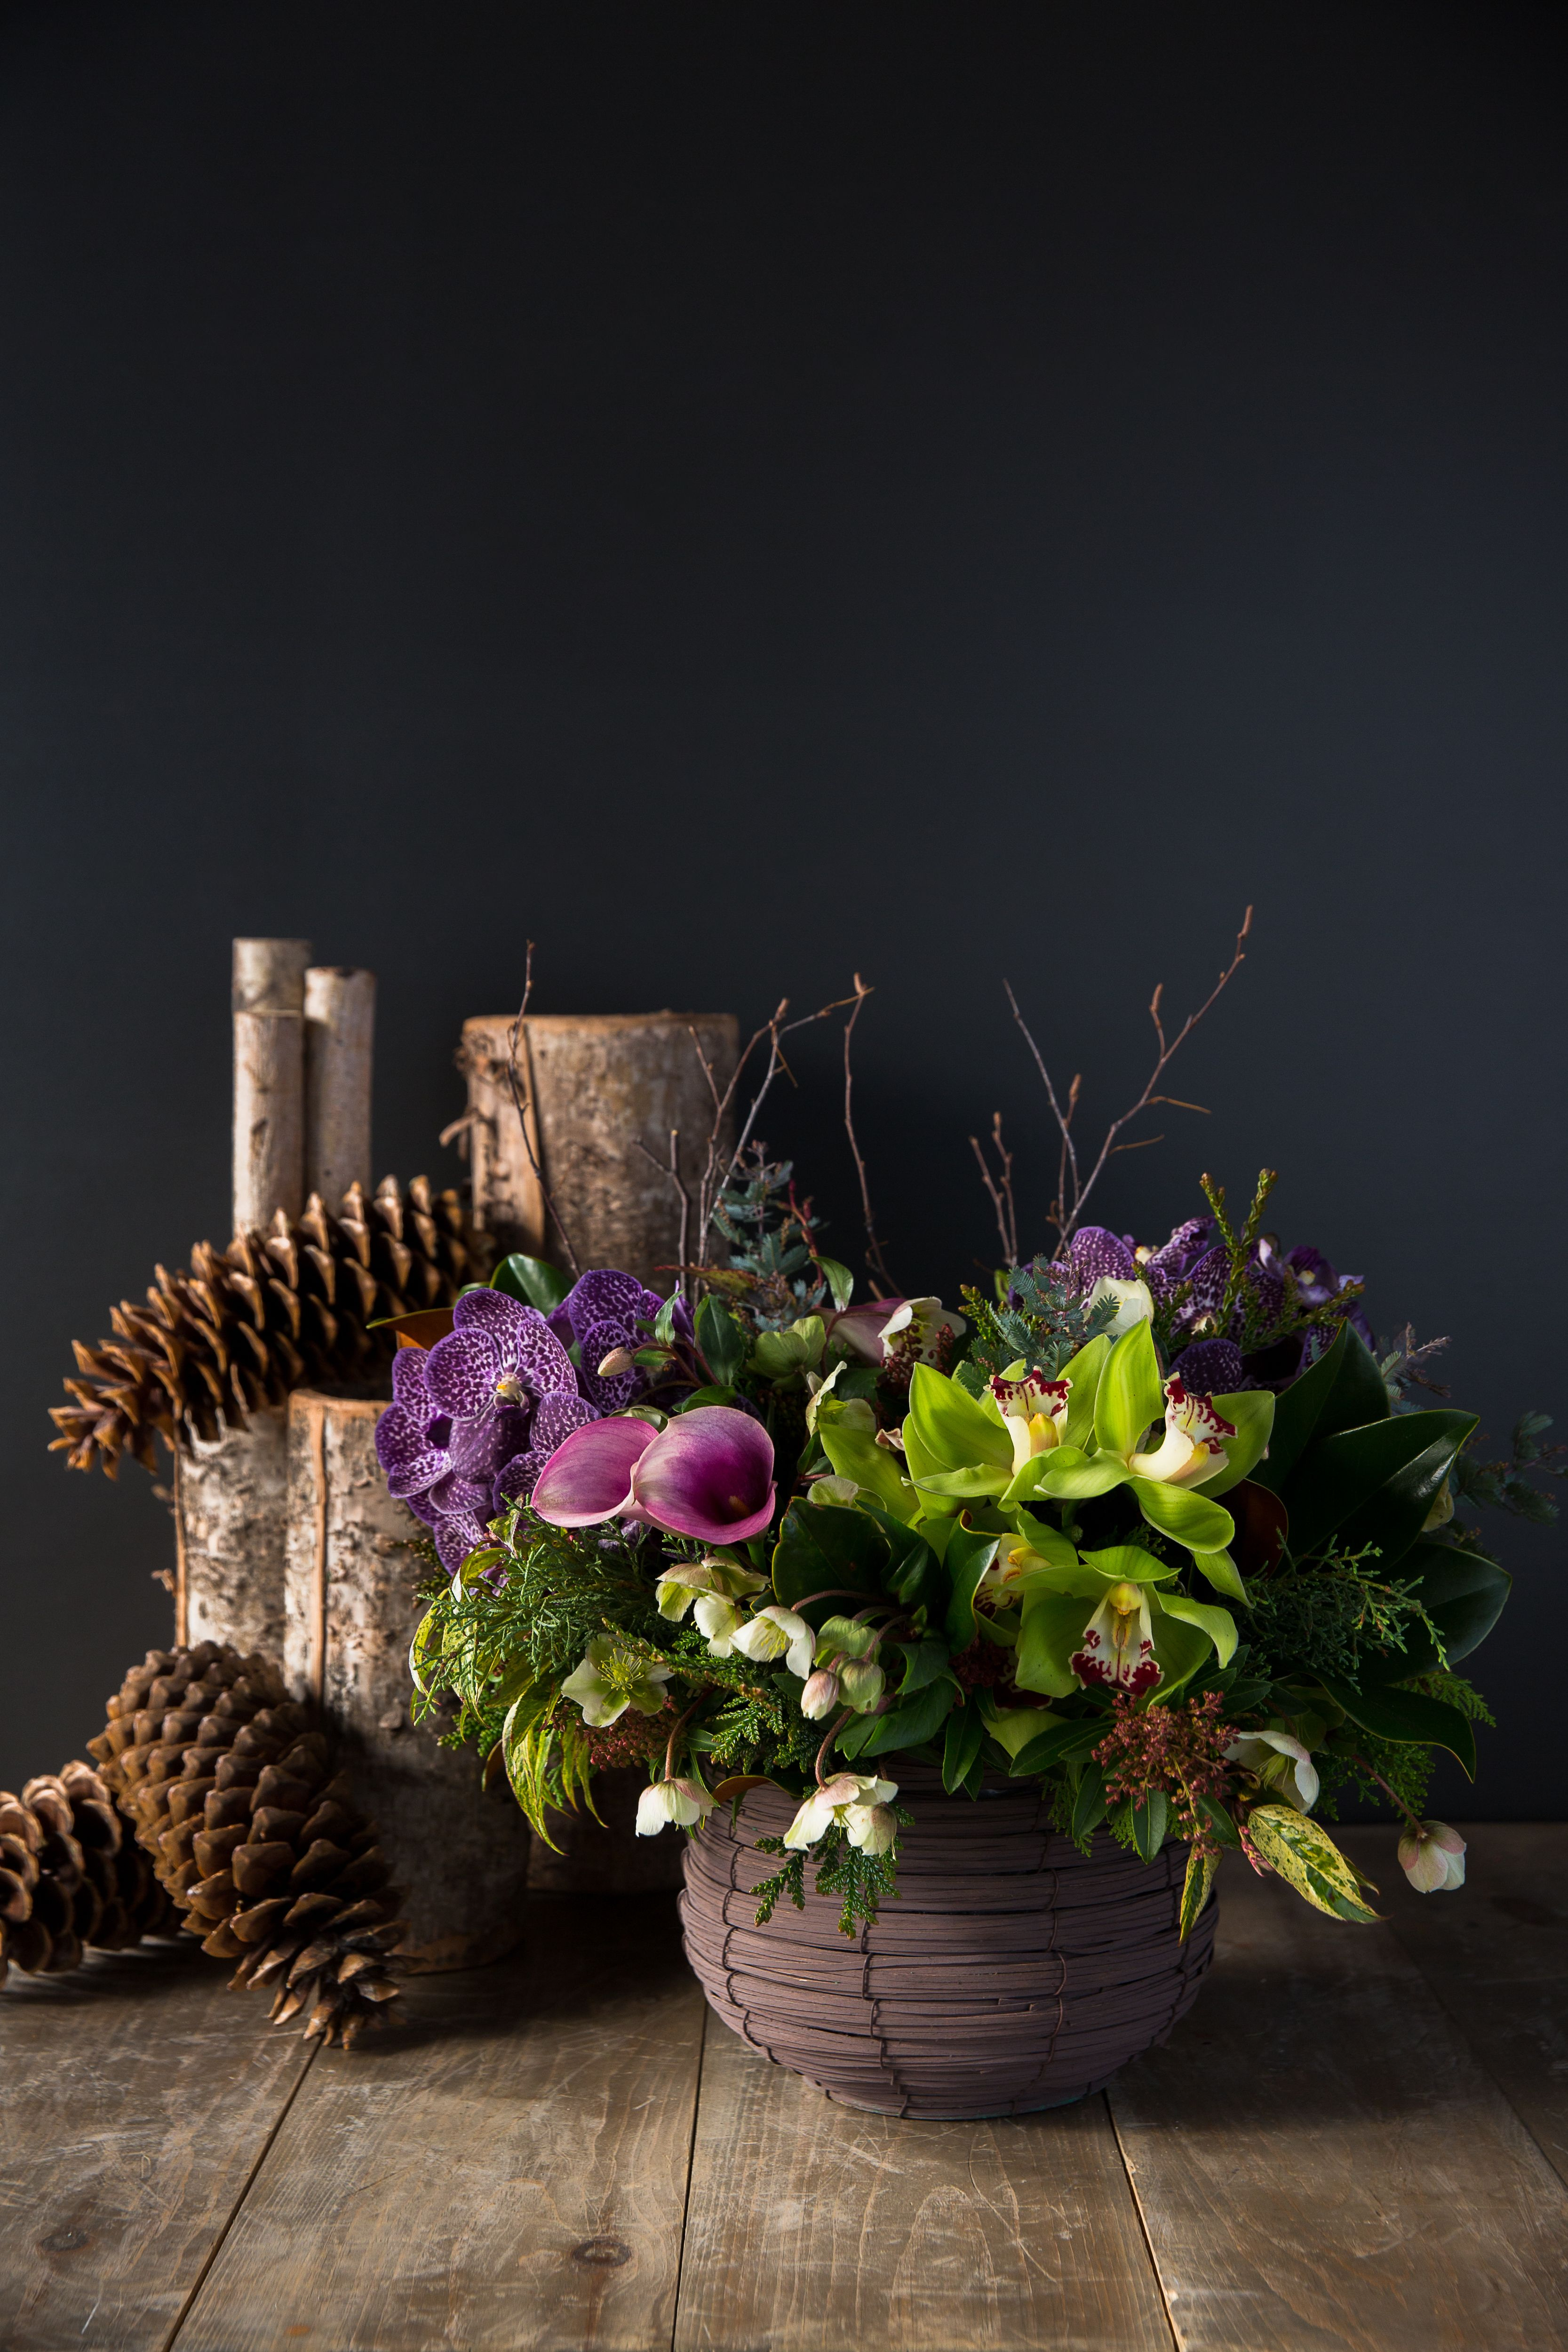 Lush Jewel Tones And Festive Winter Accents Royal Plum By Winston Flowers Photo Credit To Emily Kan Winston Flowers Flower Delivery Hanging Flowers